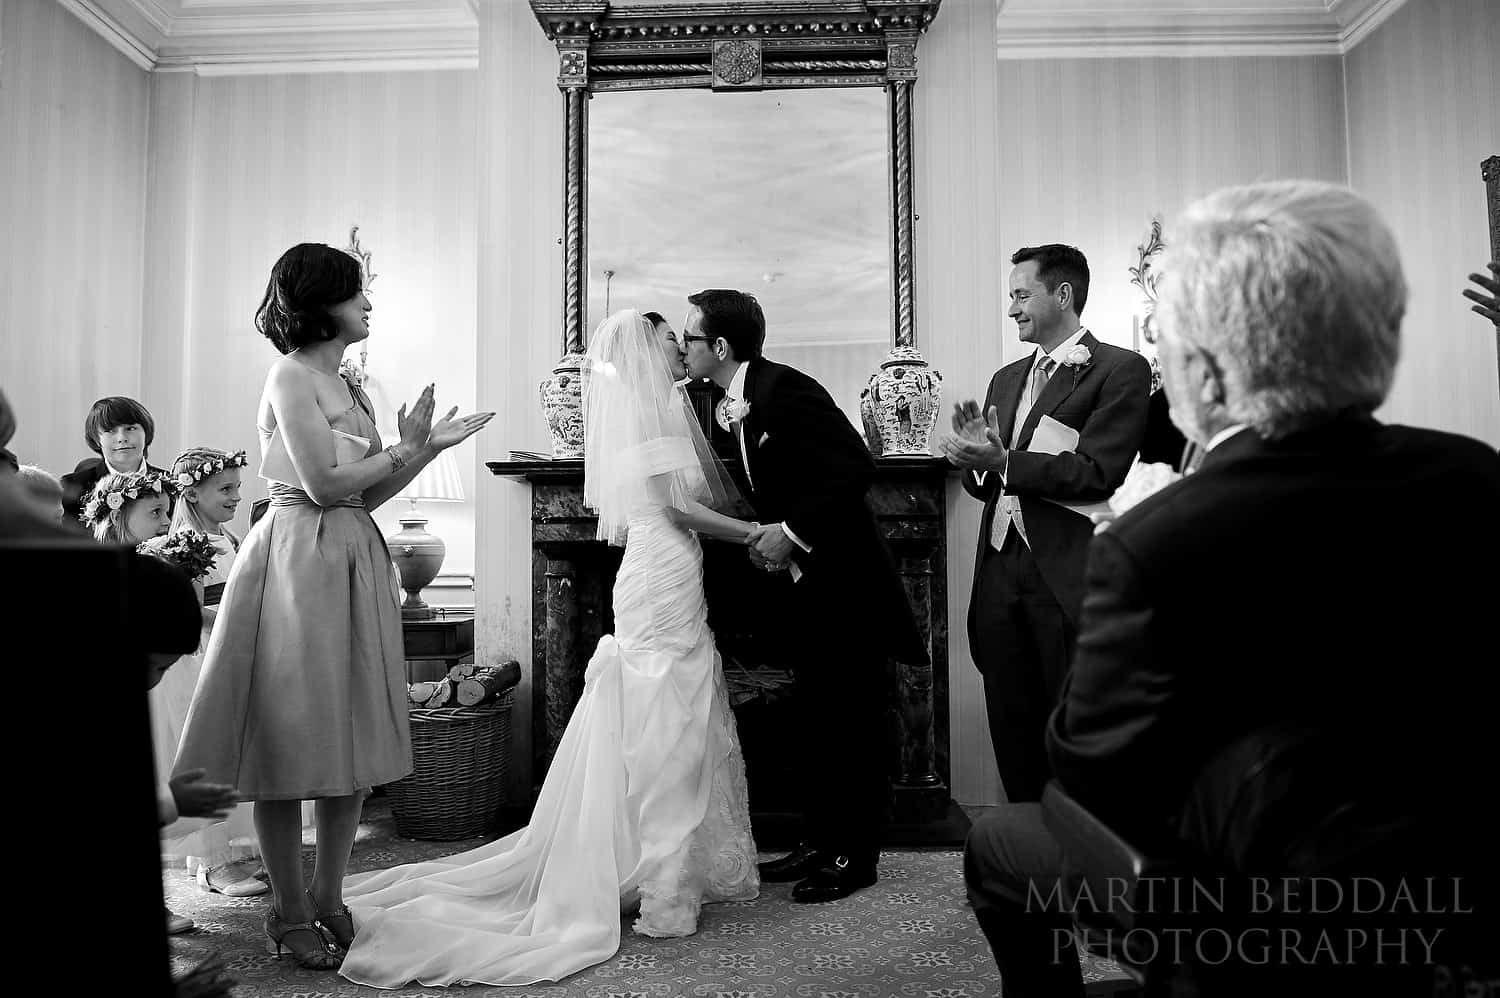 Bride and groom kiss after the ceremony at Ockenden manor